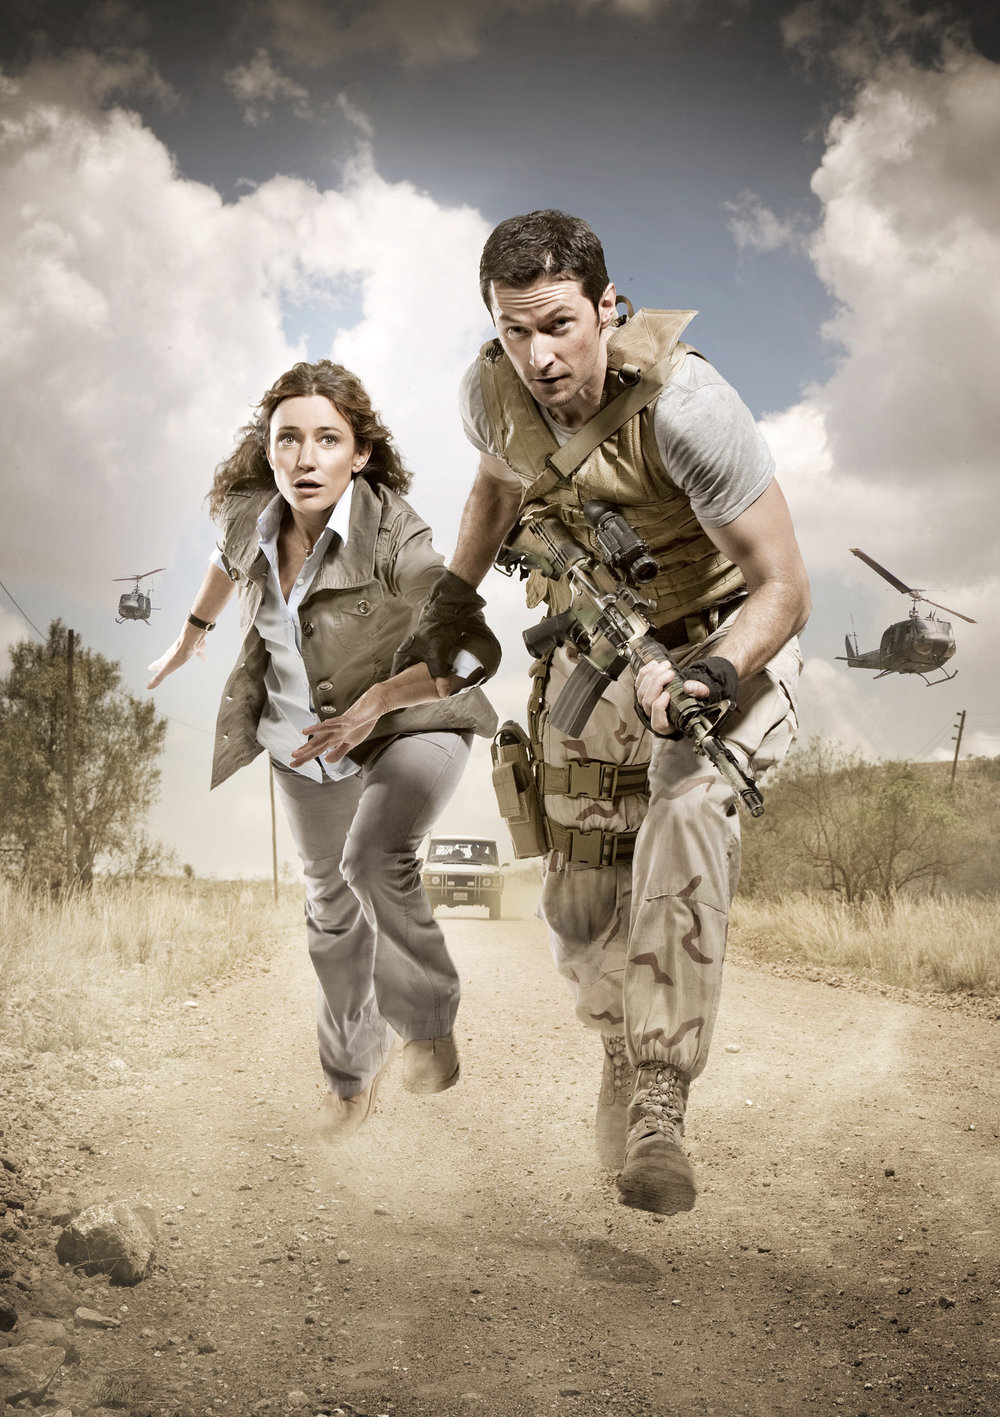 Publicity campaign for the TV show Strike Back, for Sky